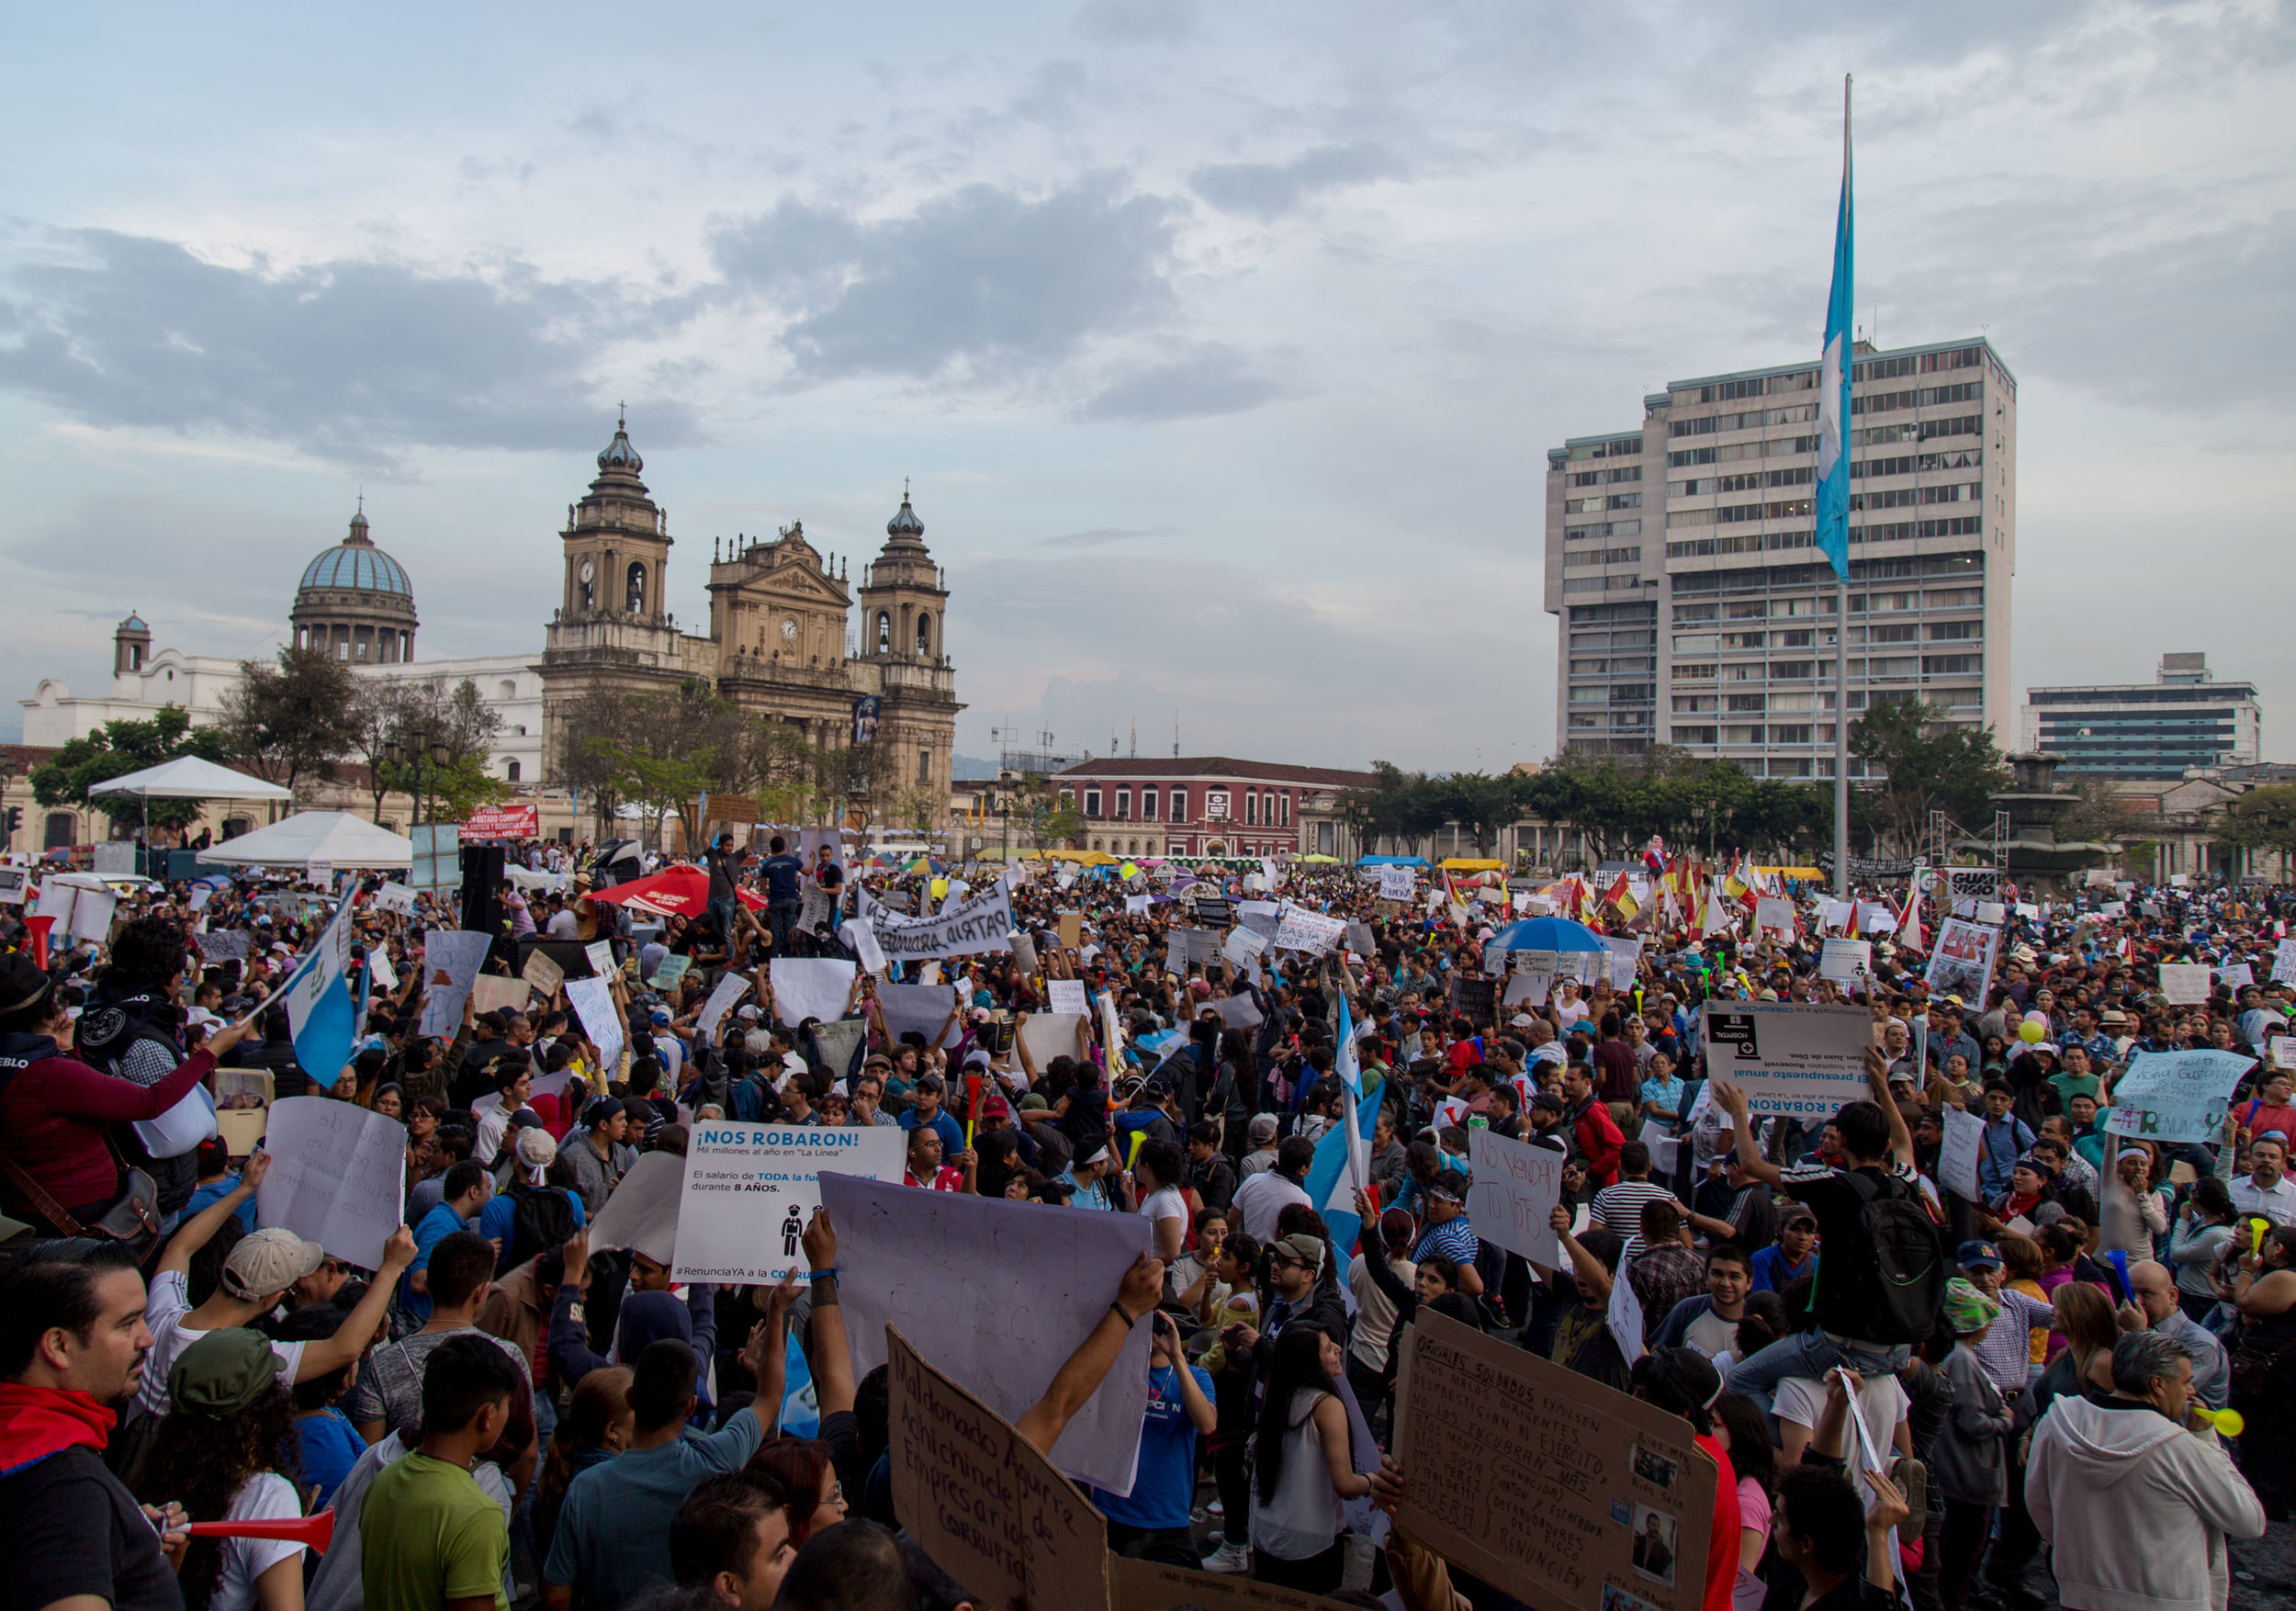 June 2015, Guatemala City. Findings of the post-war anti-impunity international council triggered mass mobilization against government corruption and impunity. Photo courtesy of Tomas Ayuso.